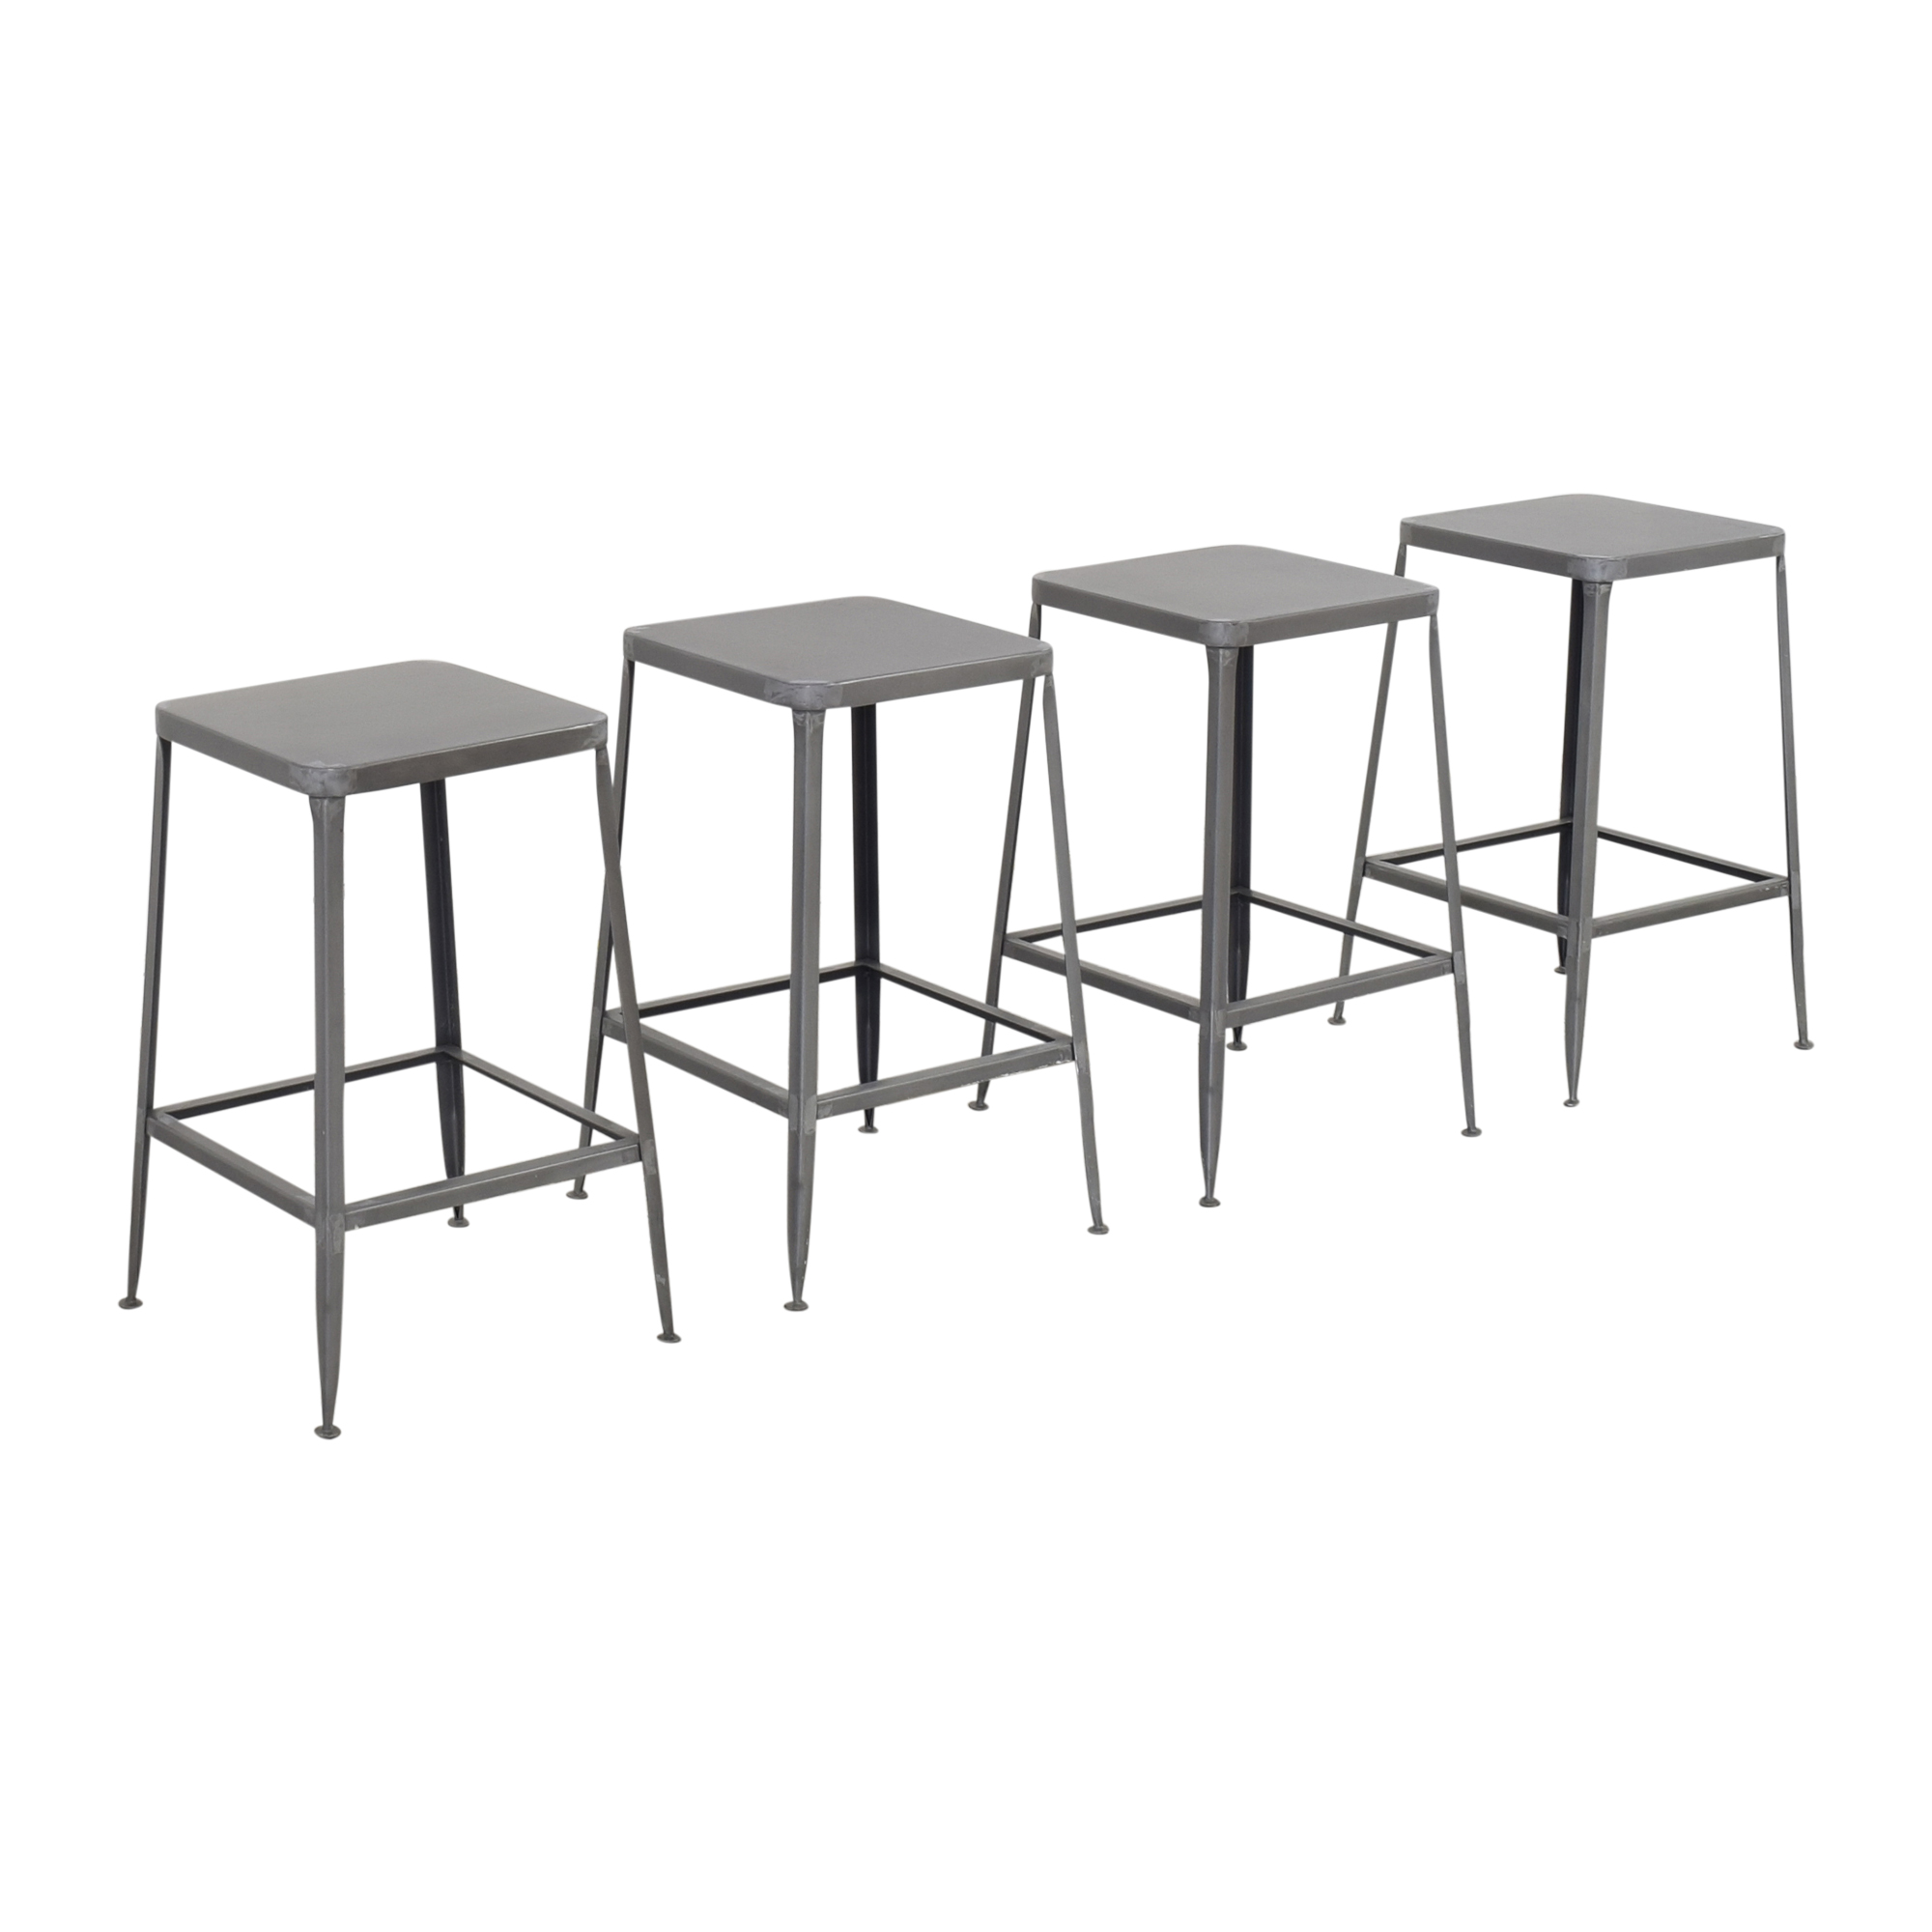 CB2 CB2 Flint Counter Stools nj